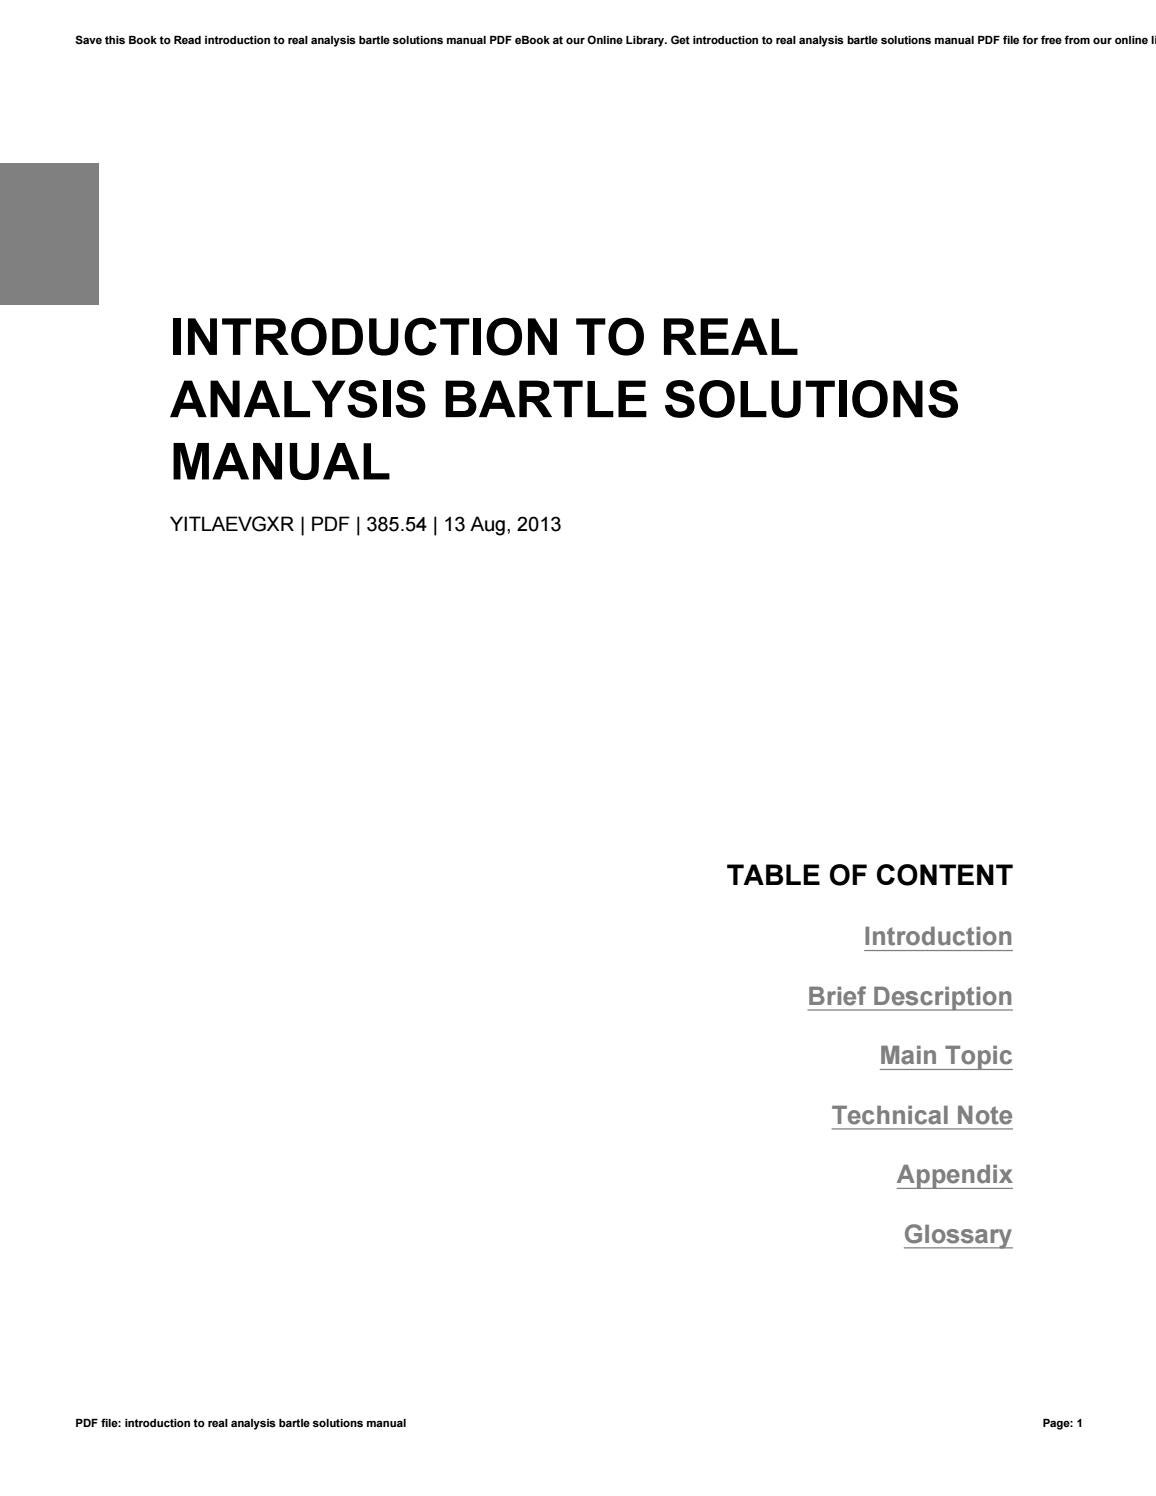 introduction to real analysis bartle solutions manual by rh issuu com